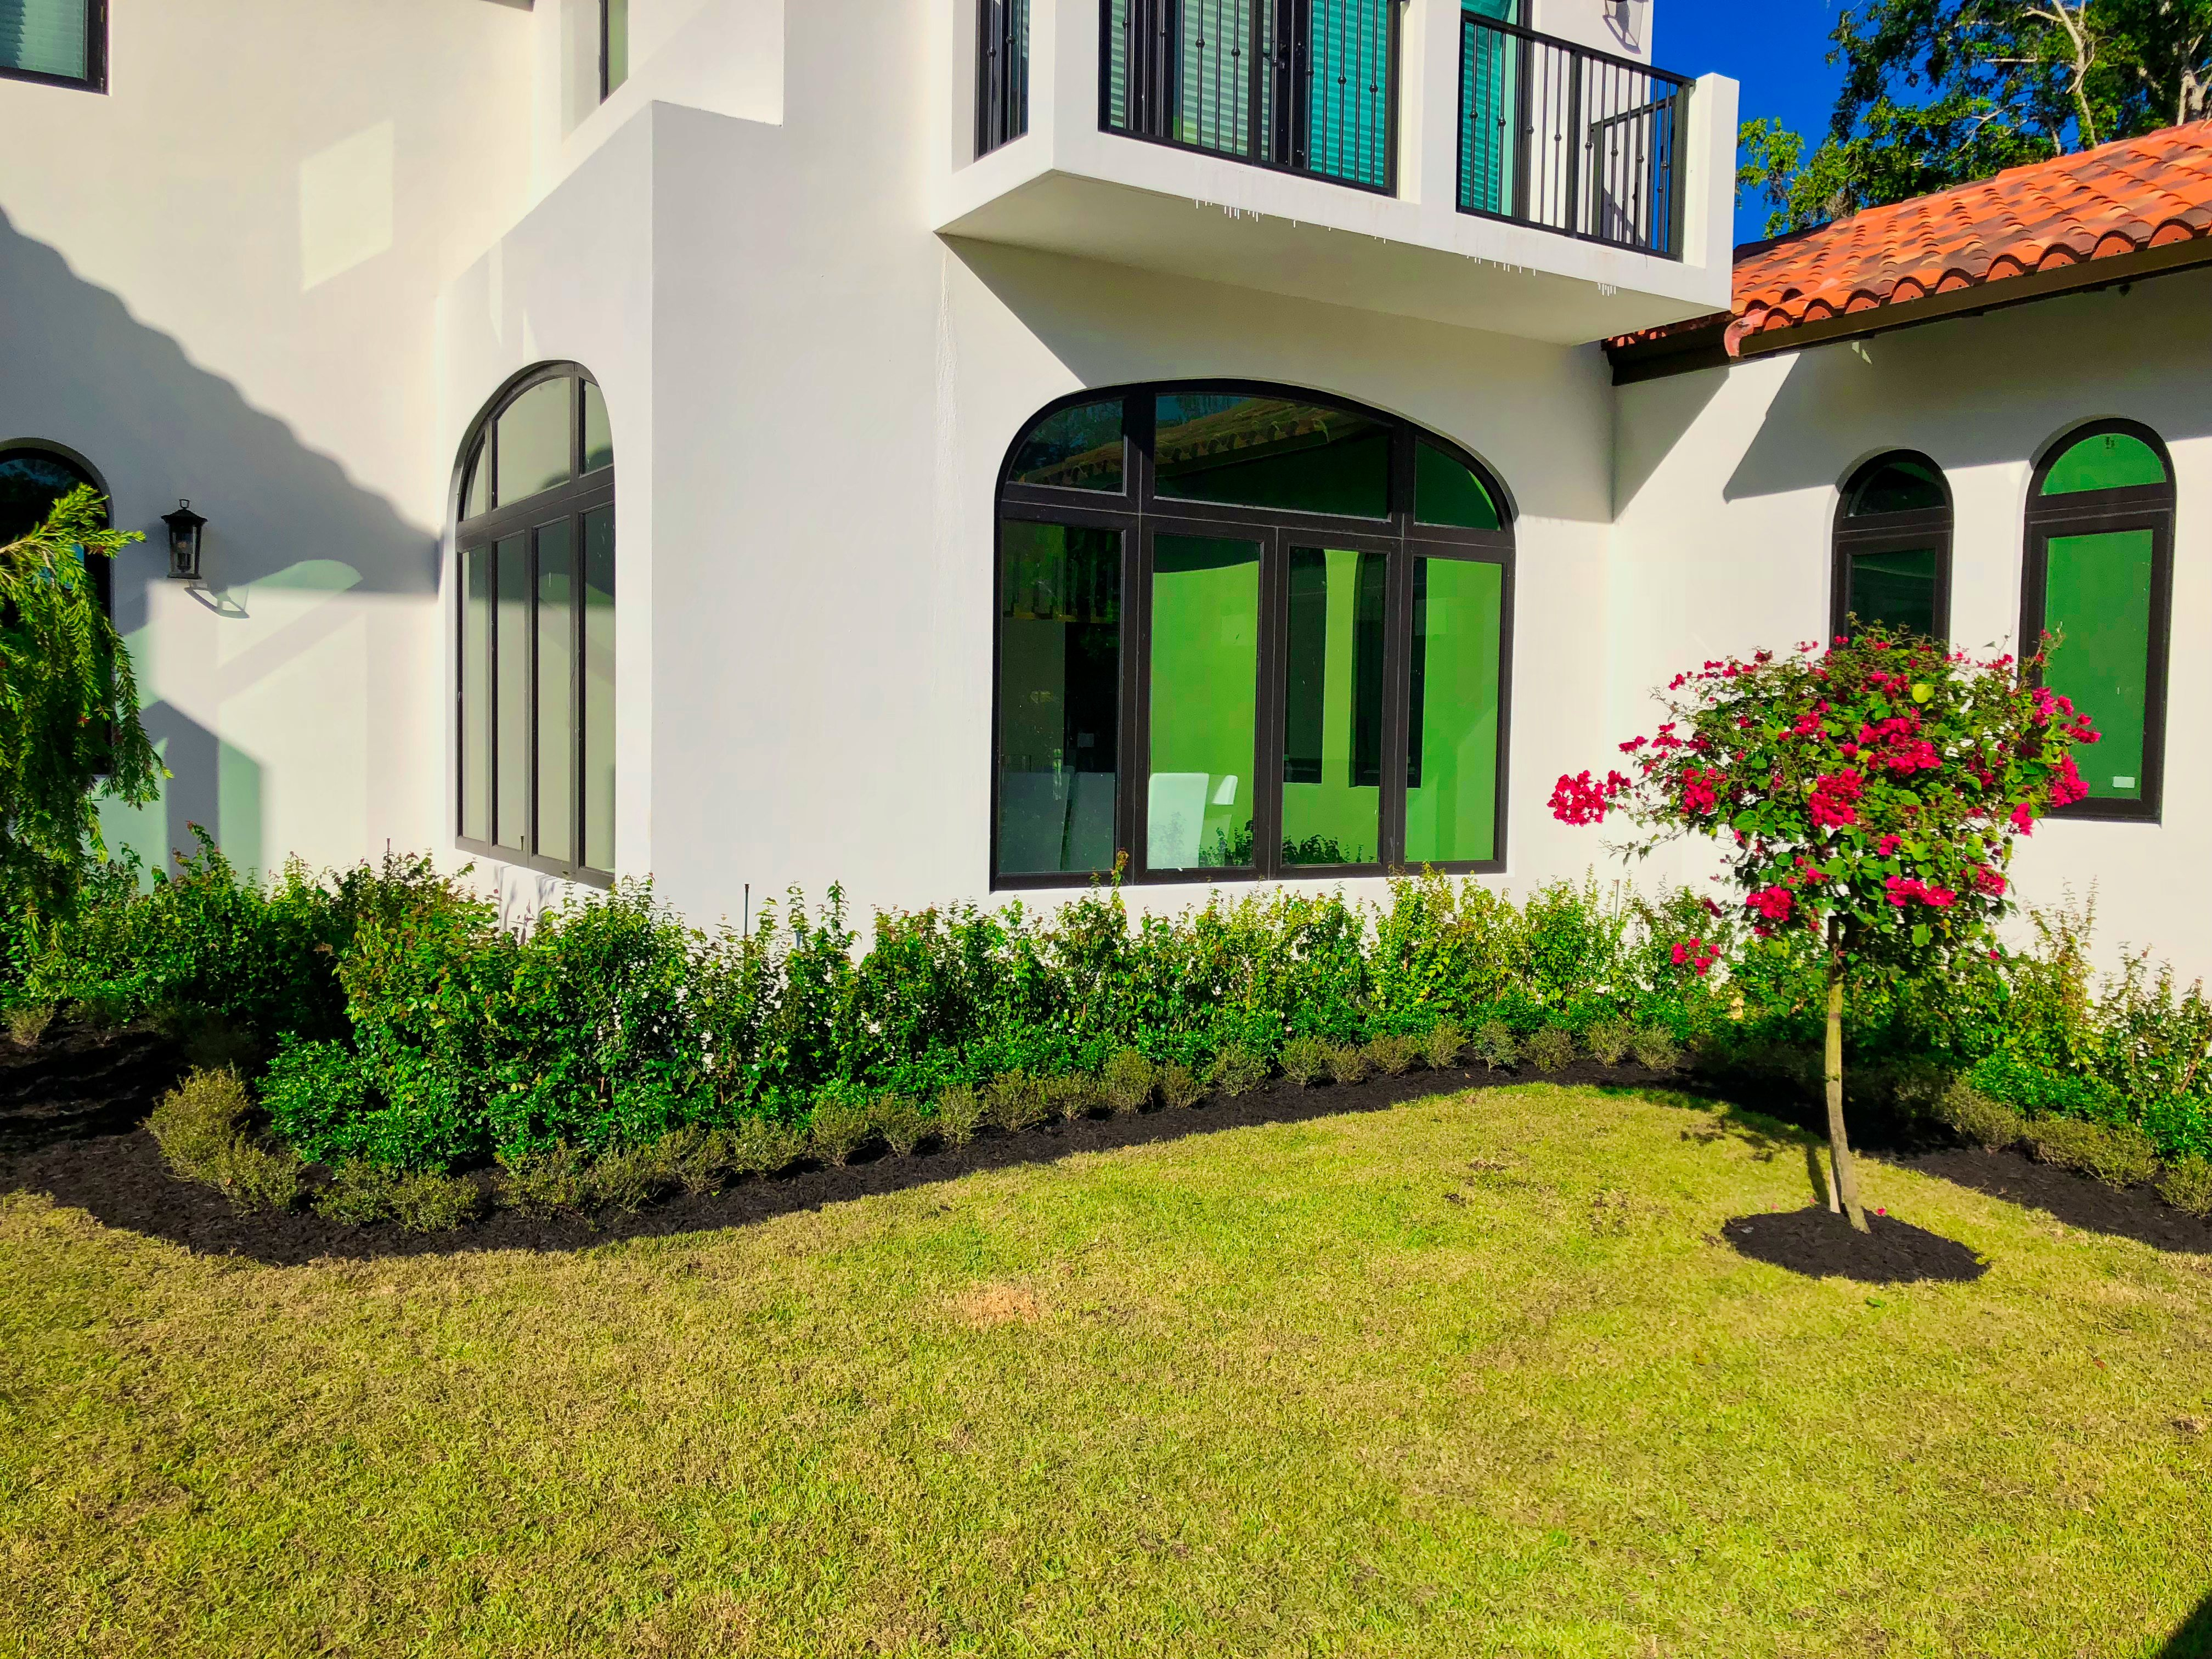 Pink and Green | Residential Landscaping Company ... on Backyard Landscaping Companies Near Me id=65029